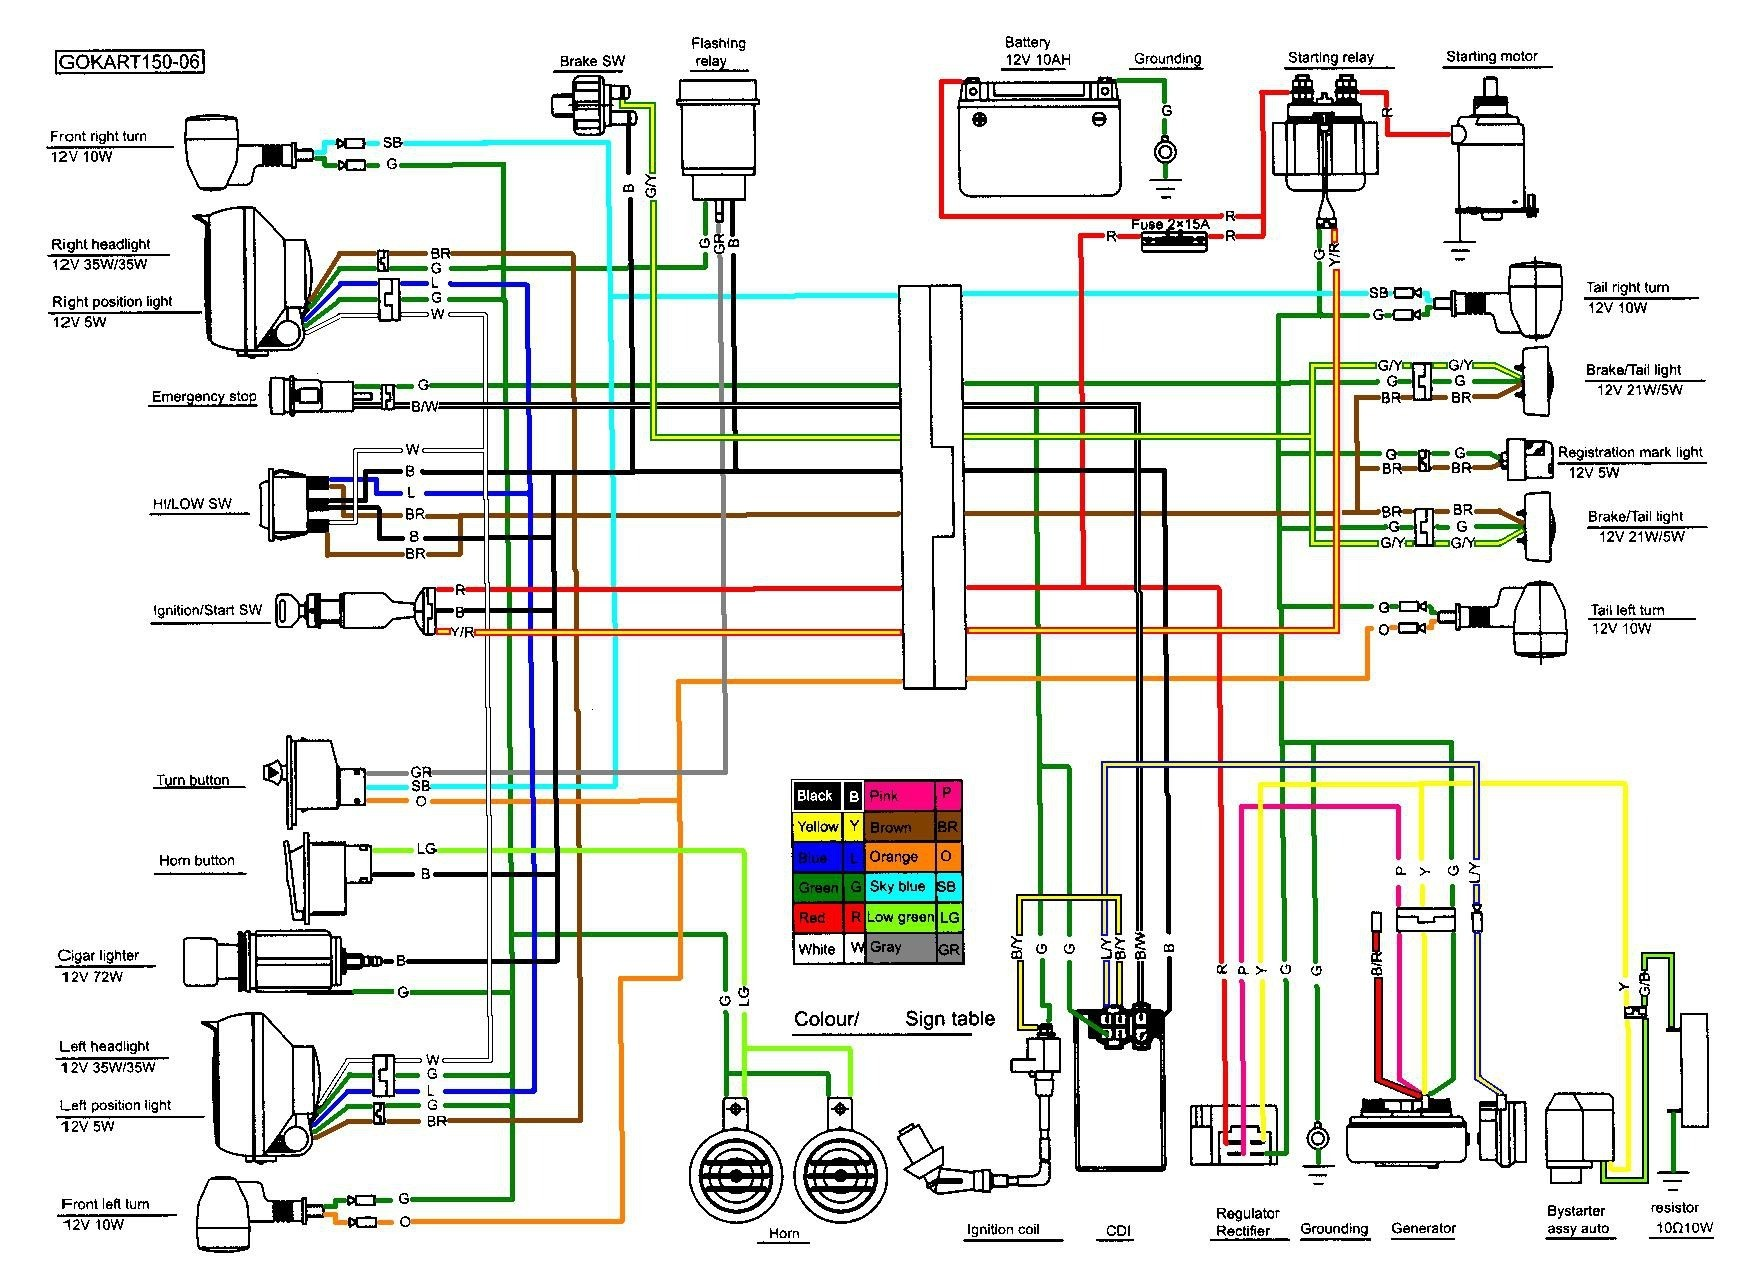 Gy6 Engine Wiring Diagram Wiring Diagram for Tao Tao 150cc Detailed Schematics Diagram Of Gy6 Engine Wiring Diagram